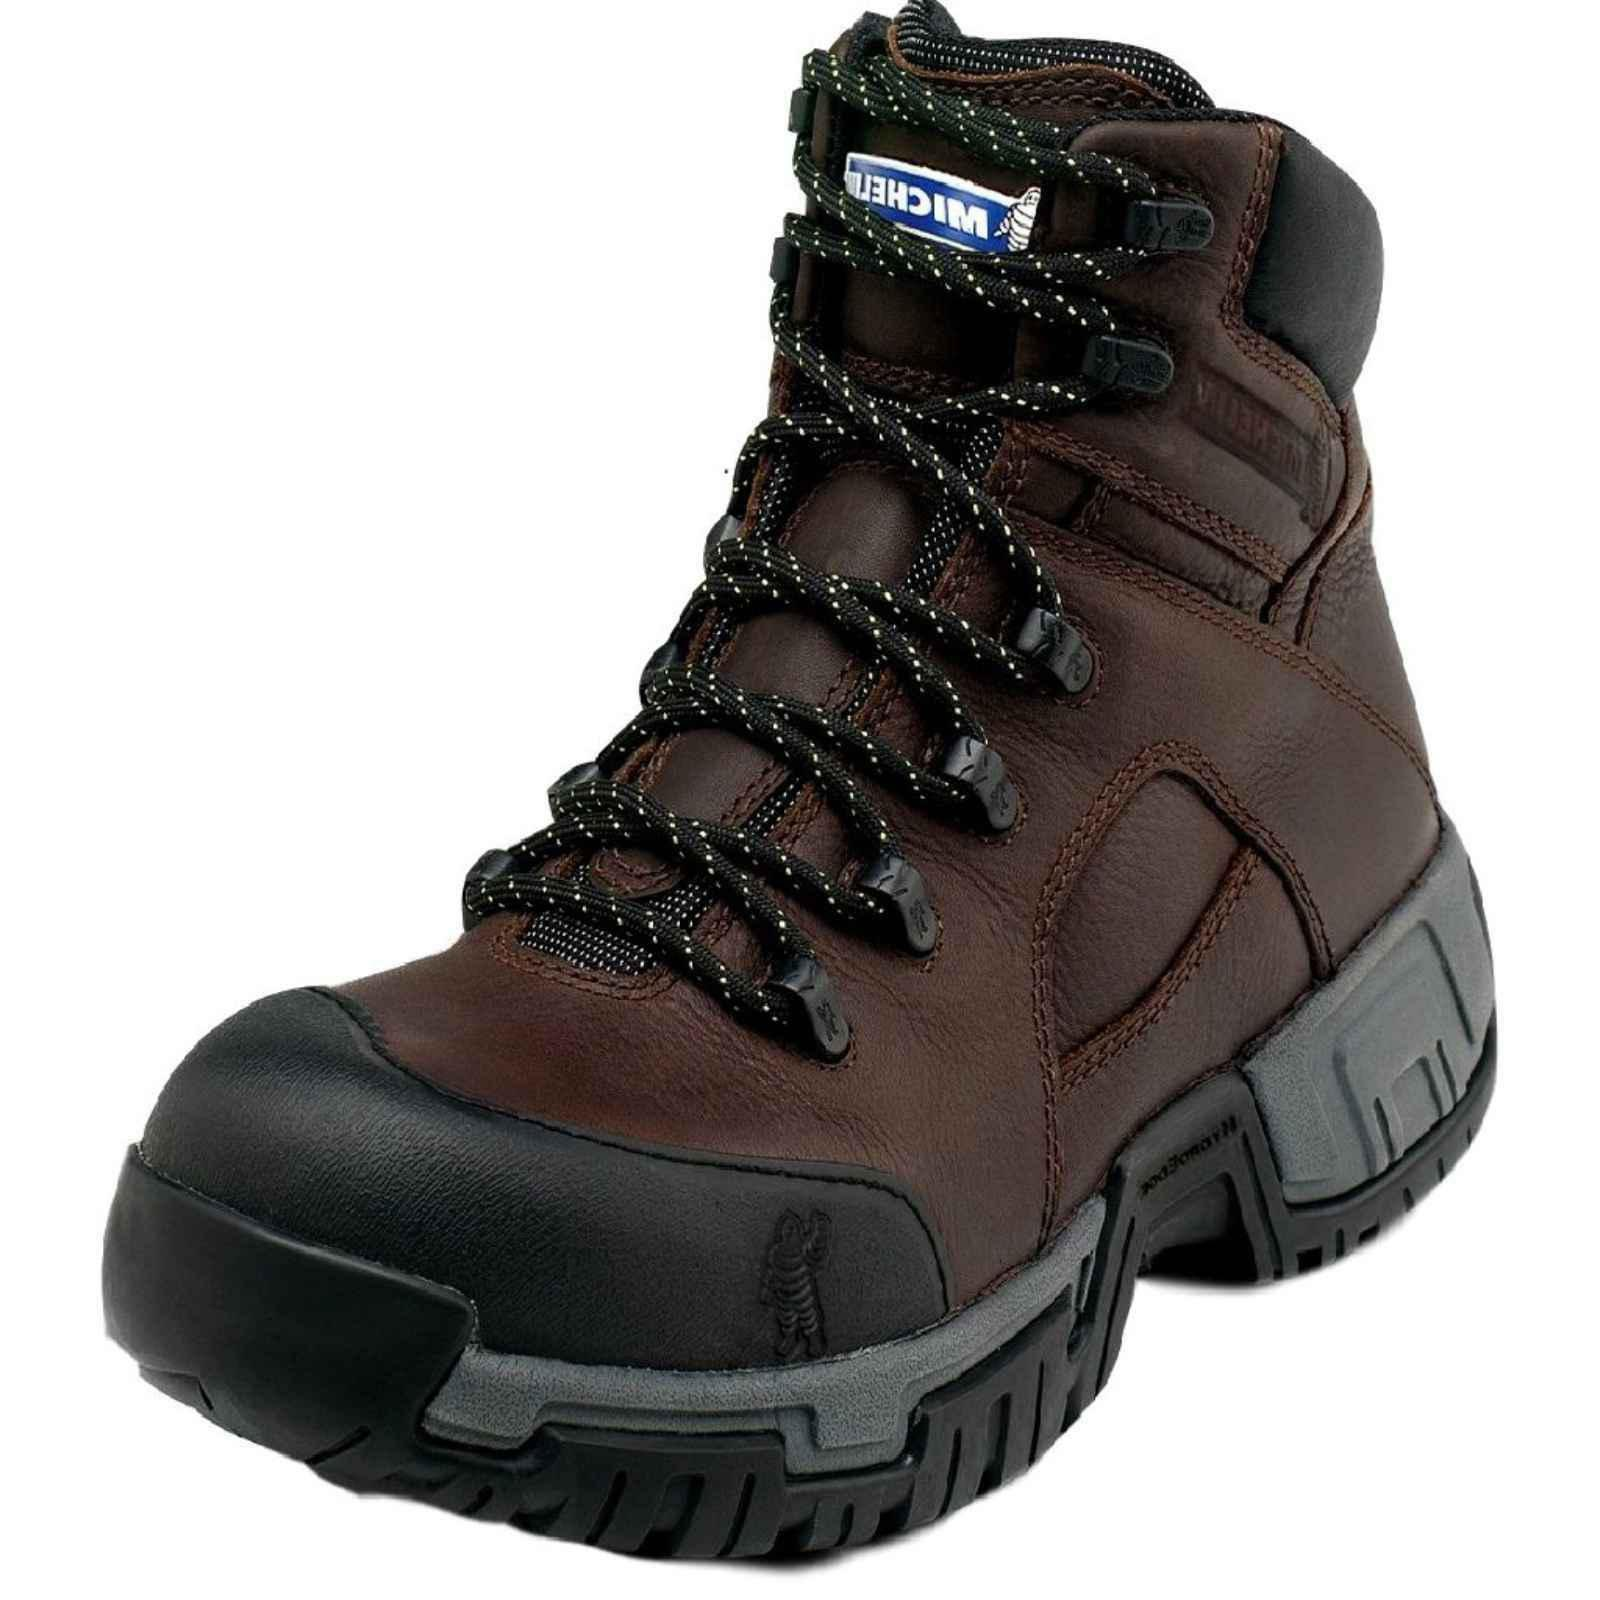 Michelin Men's Hydroedge Hitop Steel Toe Boots,Brown,9.5 W by MICHELIN (Image #1)